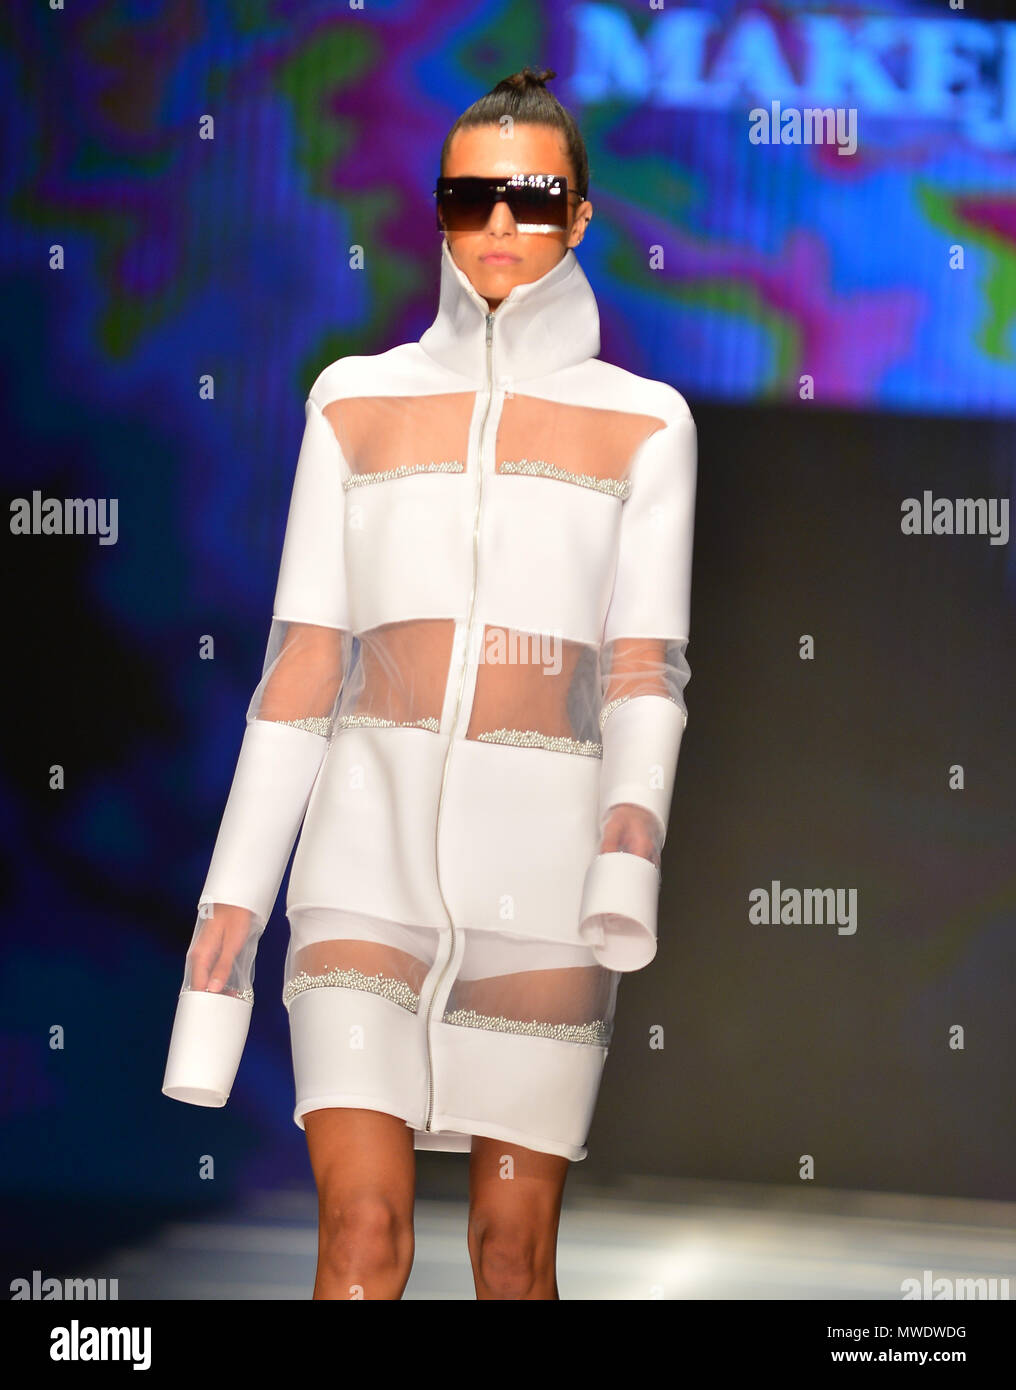 Miami Fl May 31 A Model Walks The Runway At The Miami Fashion Institute Fashion Show During The Miami Fashion Week Miafw 18 Feature Up To 12 Student Fashion Designers At Ice